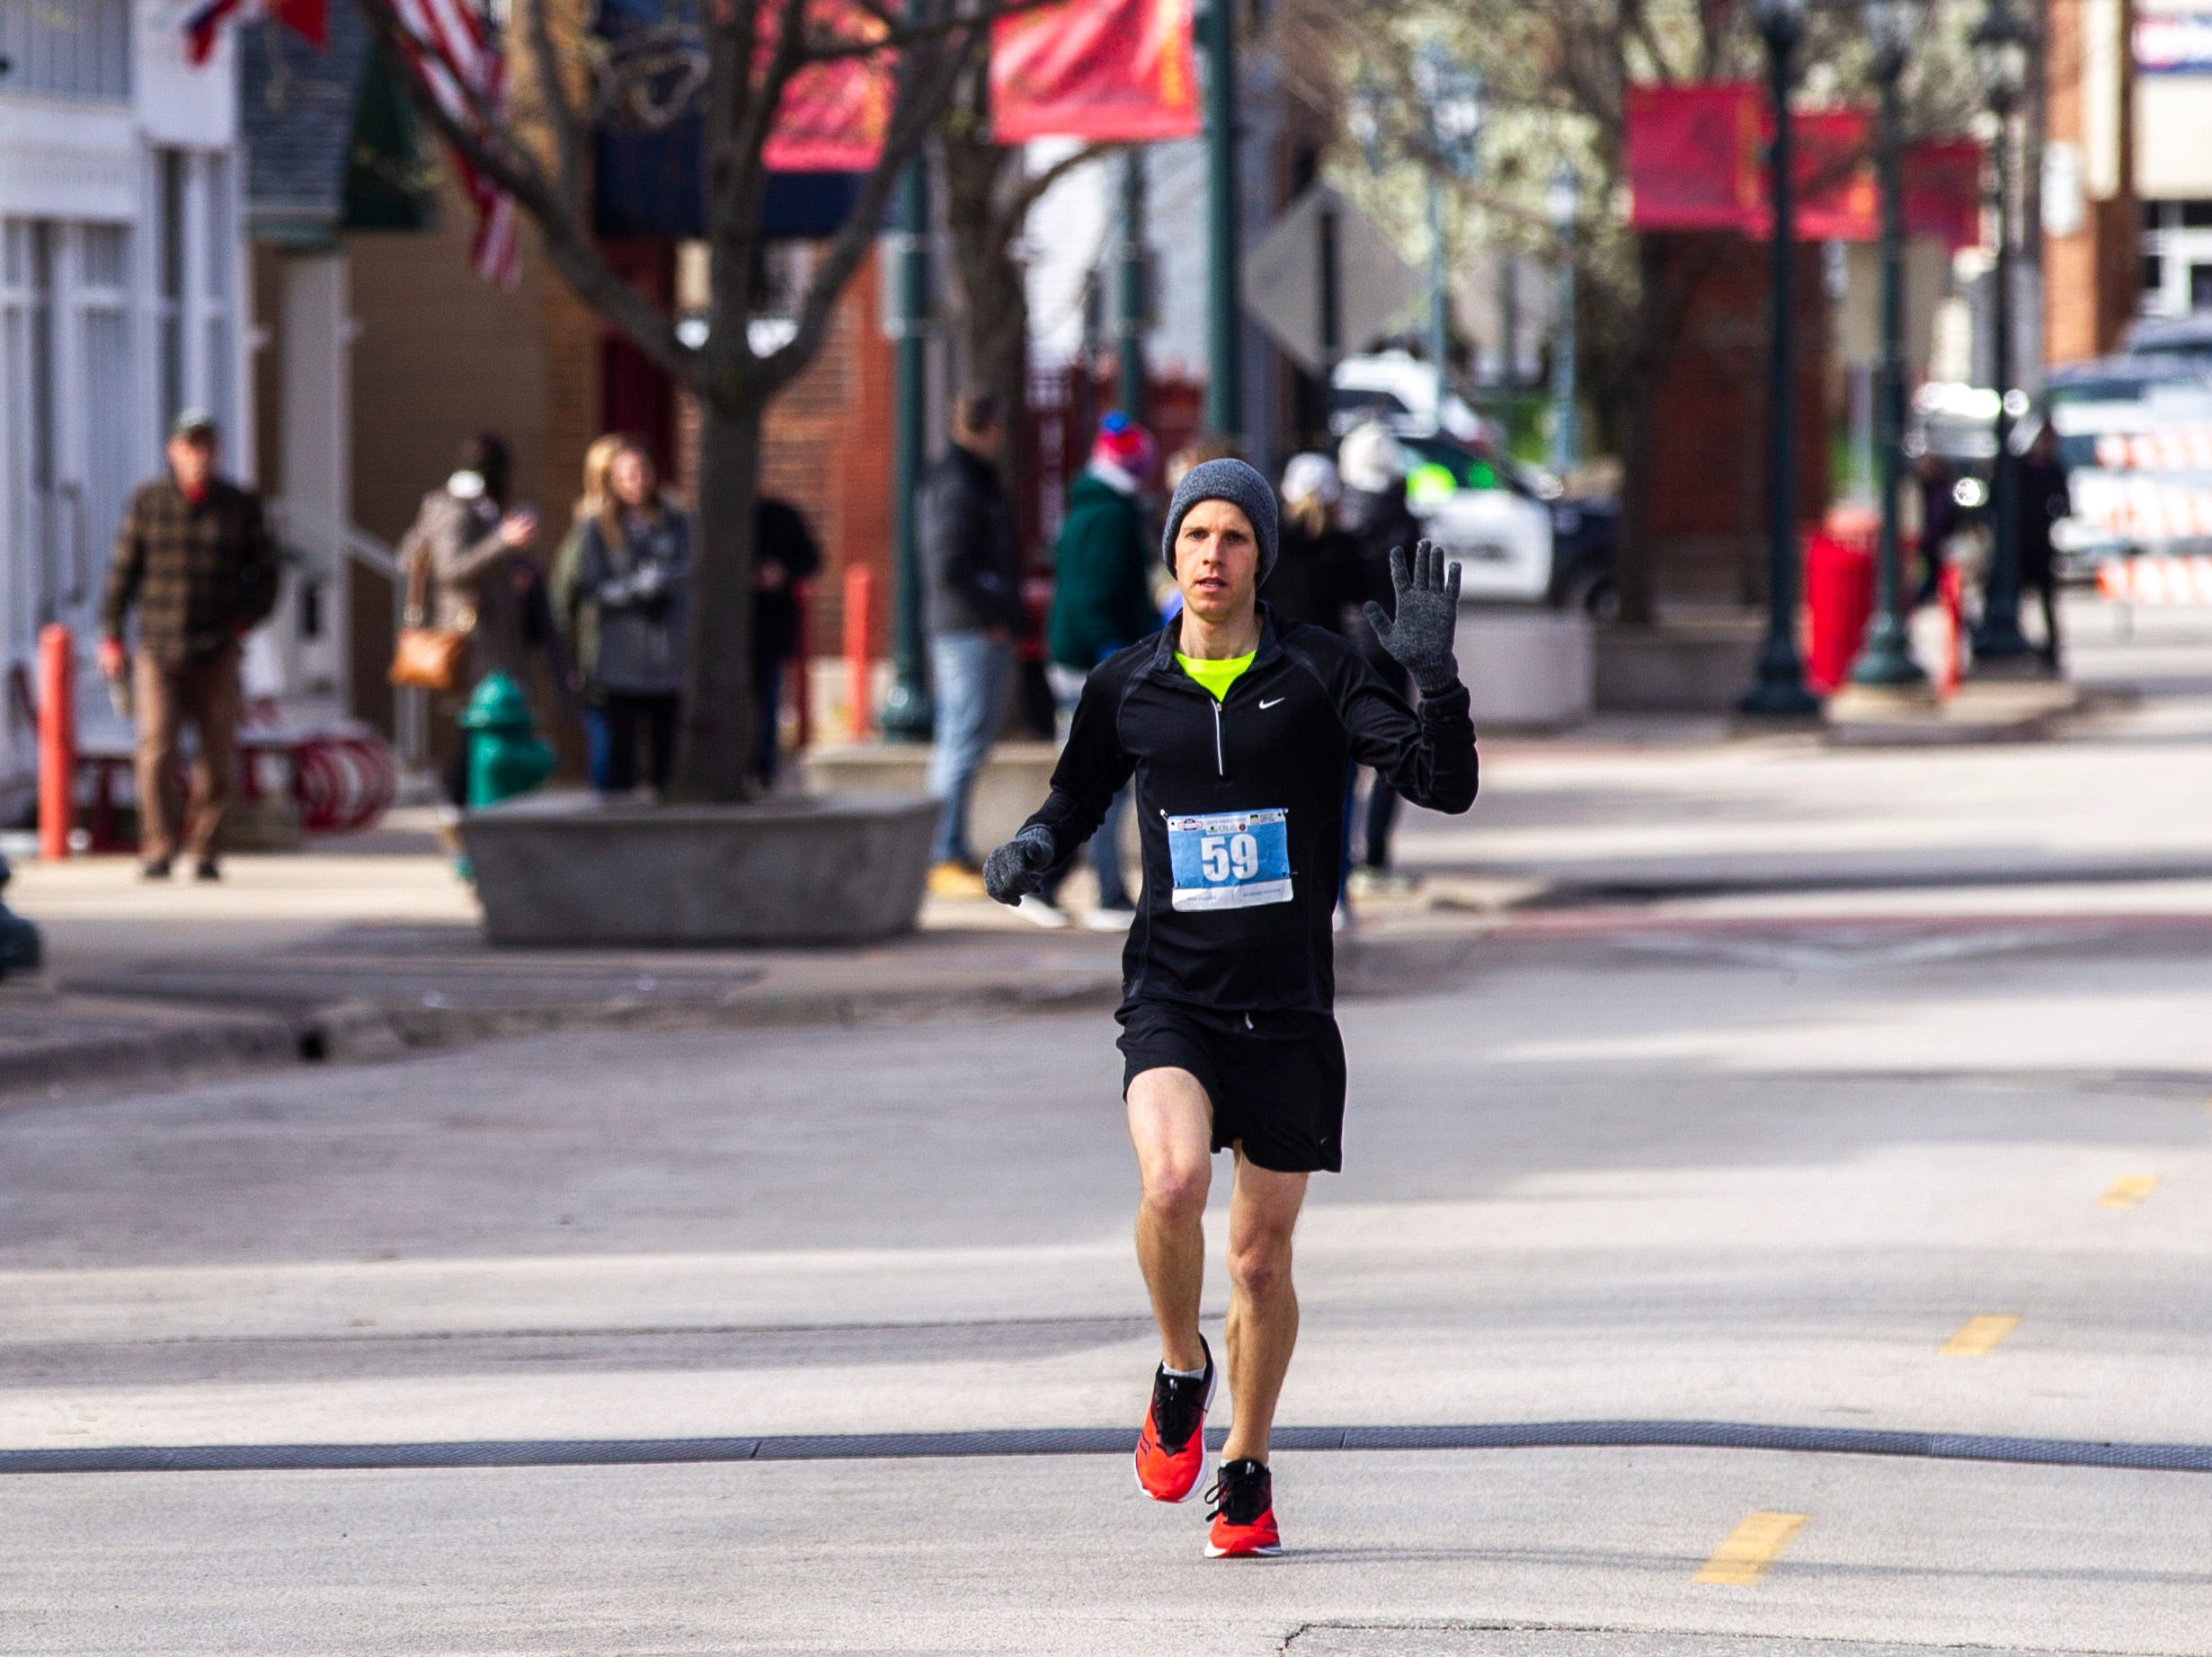 Tyler Culver of Cedar Rapids runs towards the finish line to be the first man to finish during the second annual Run CRANDIC marathon, Sunday, April 28, 2019, along 16th Avenue SE in Cedar Rapids, Iowa. Culver finished with a time of 2:50:02.